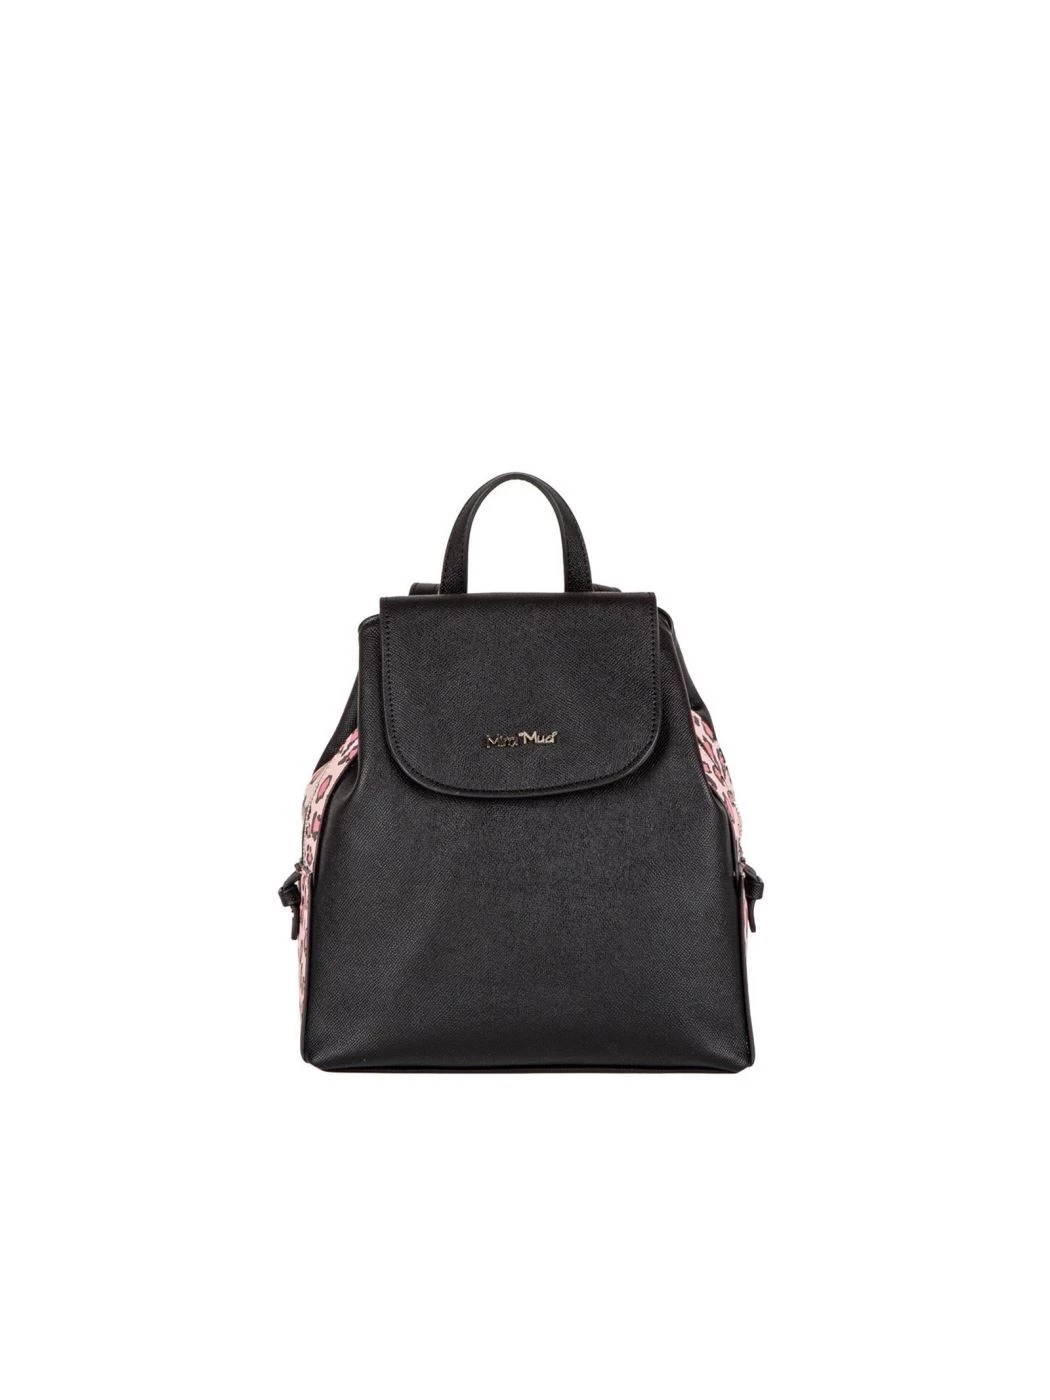 BACKPACK WITH INSERTS